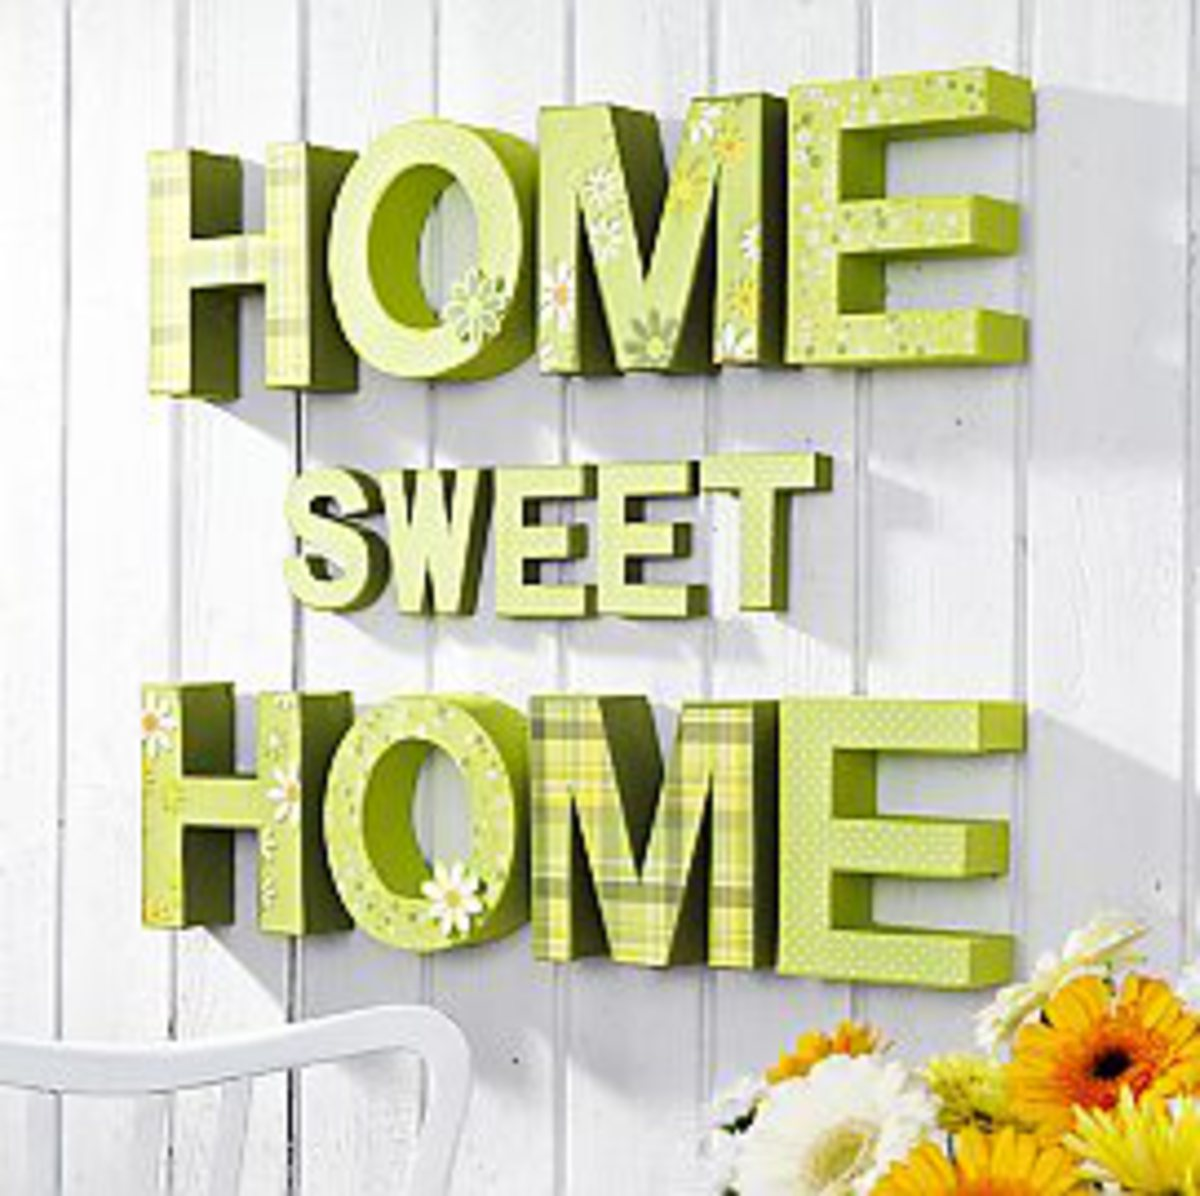 Peter39;s Blog: Home! Sweet Home!